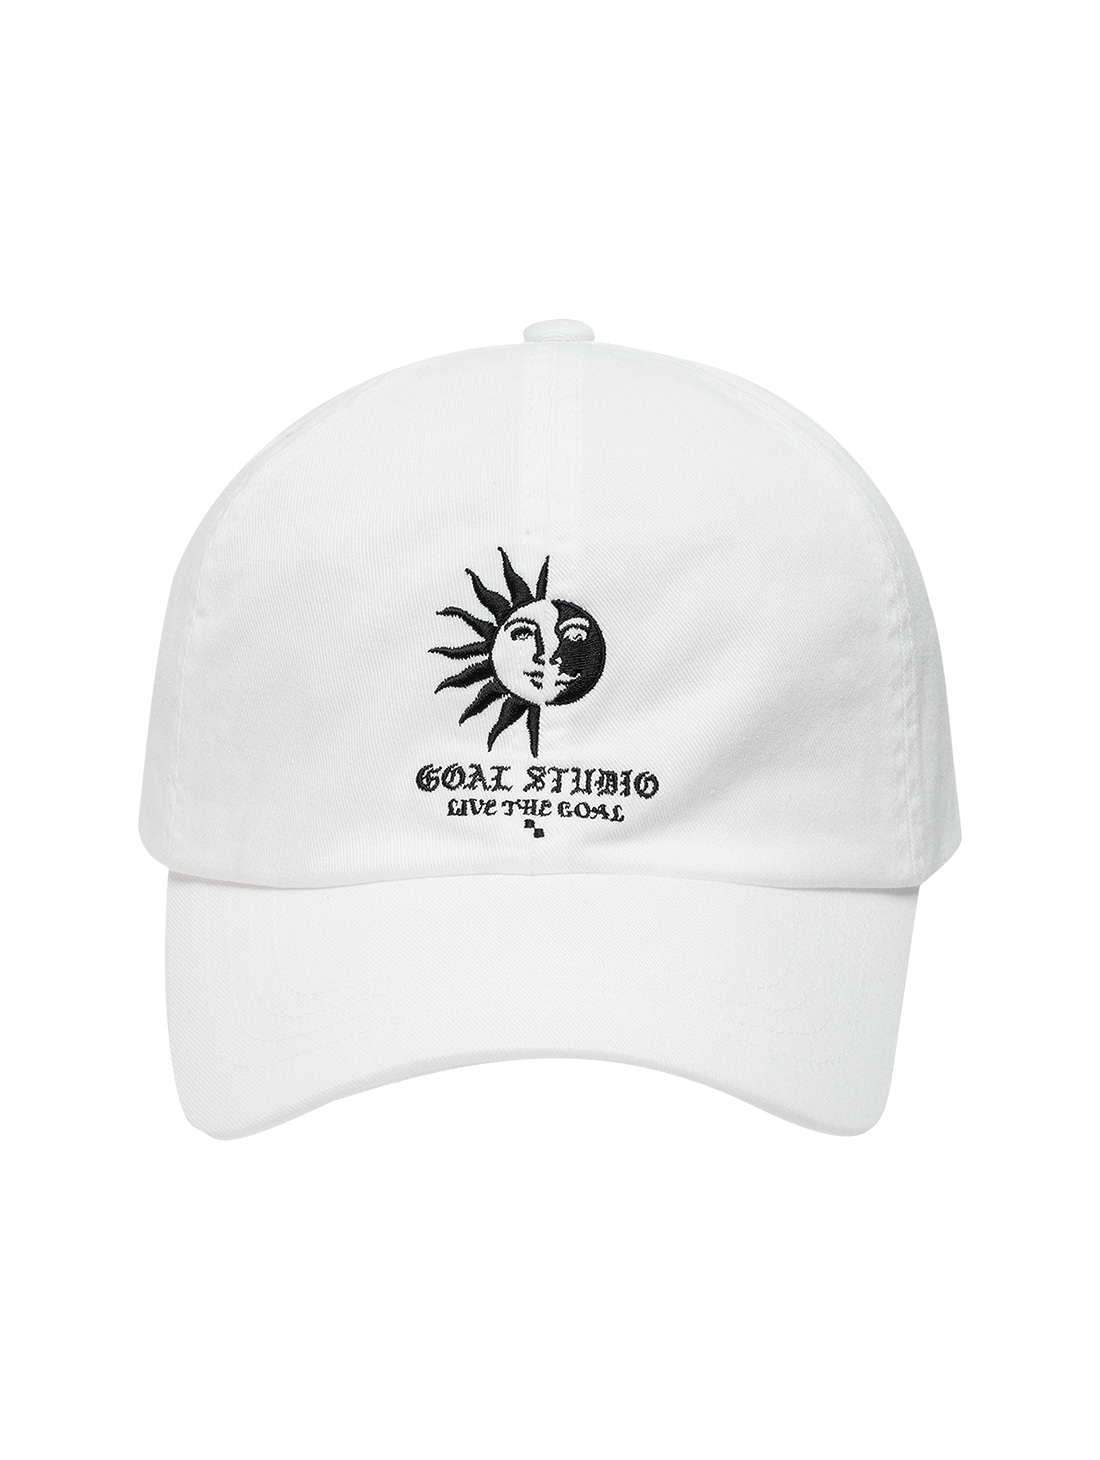 GOALSTUDIO MC BALL CAP - WHITE